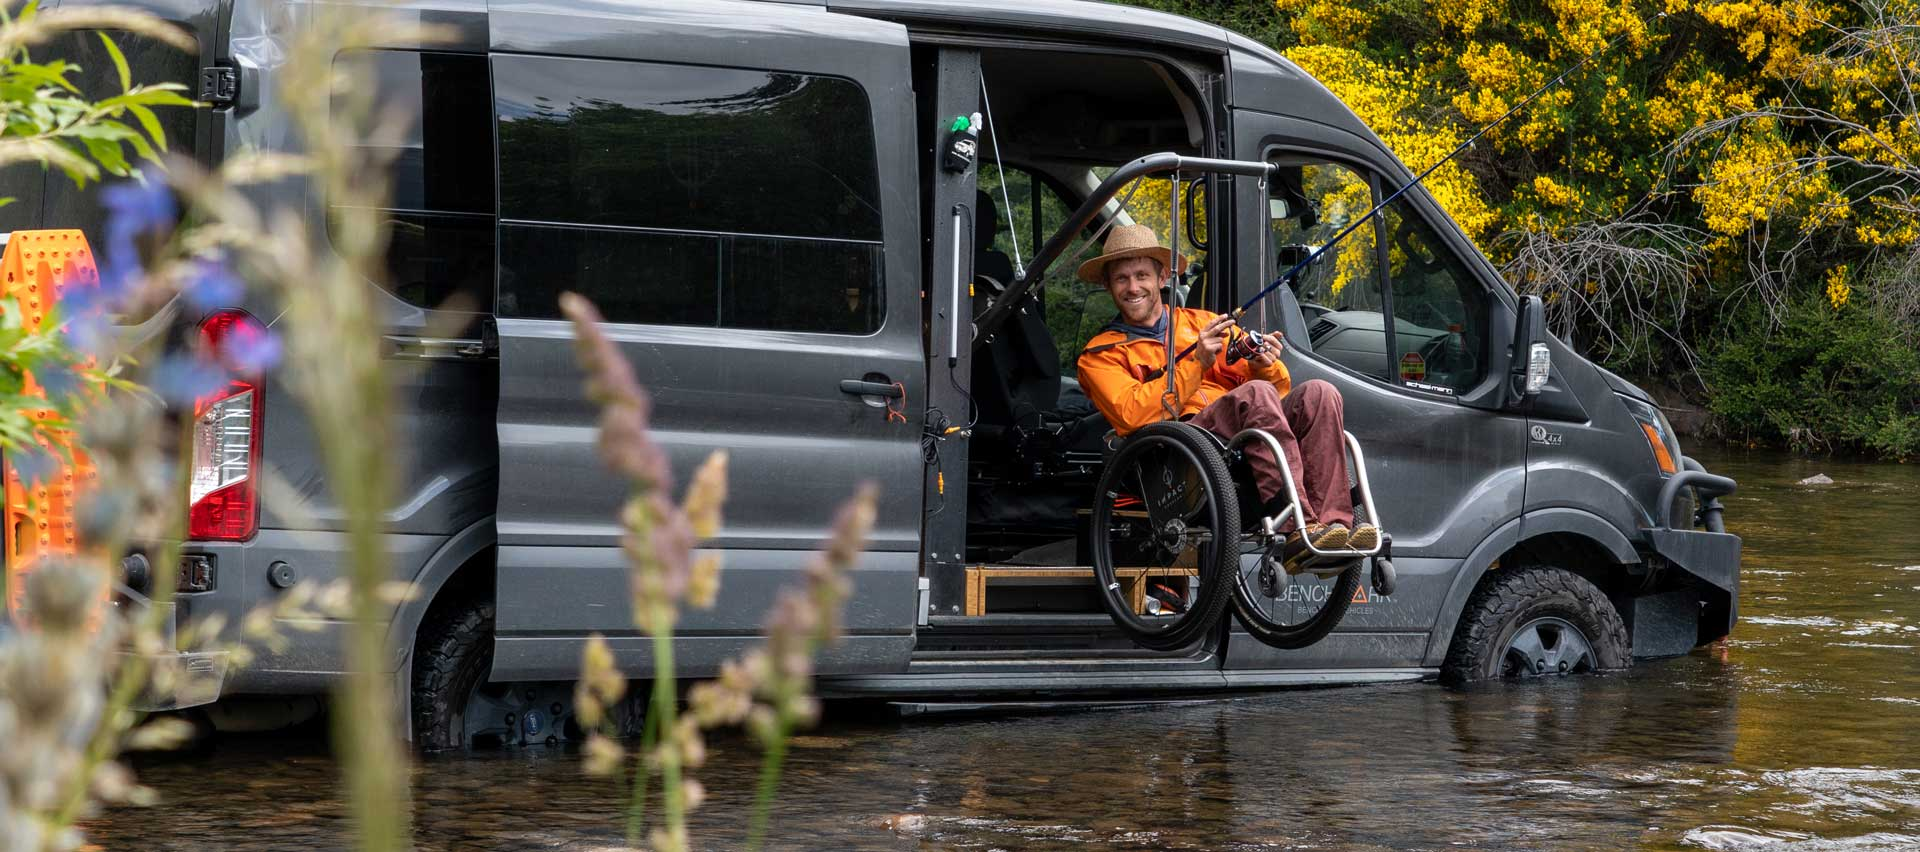 Kirk Williams: Quadriplegic Overland Adventurer